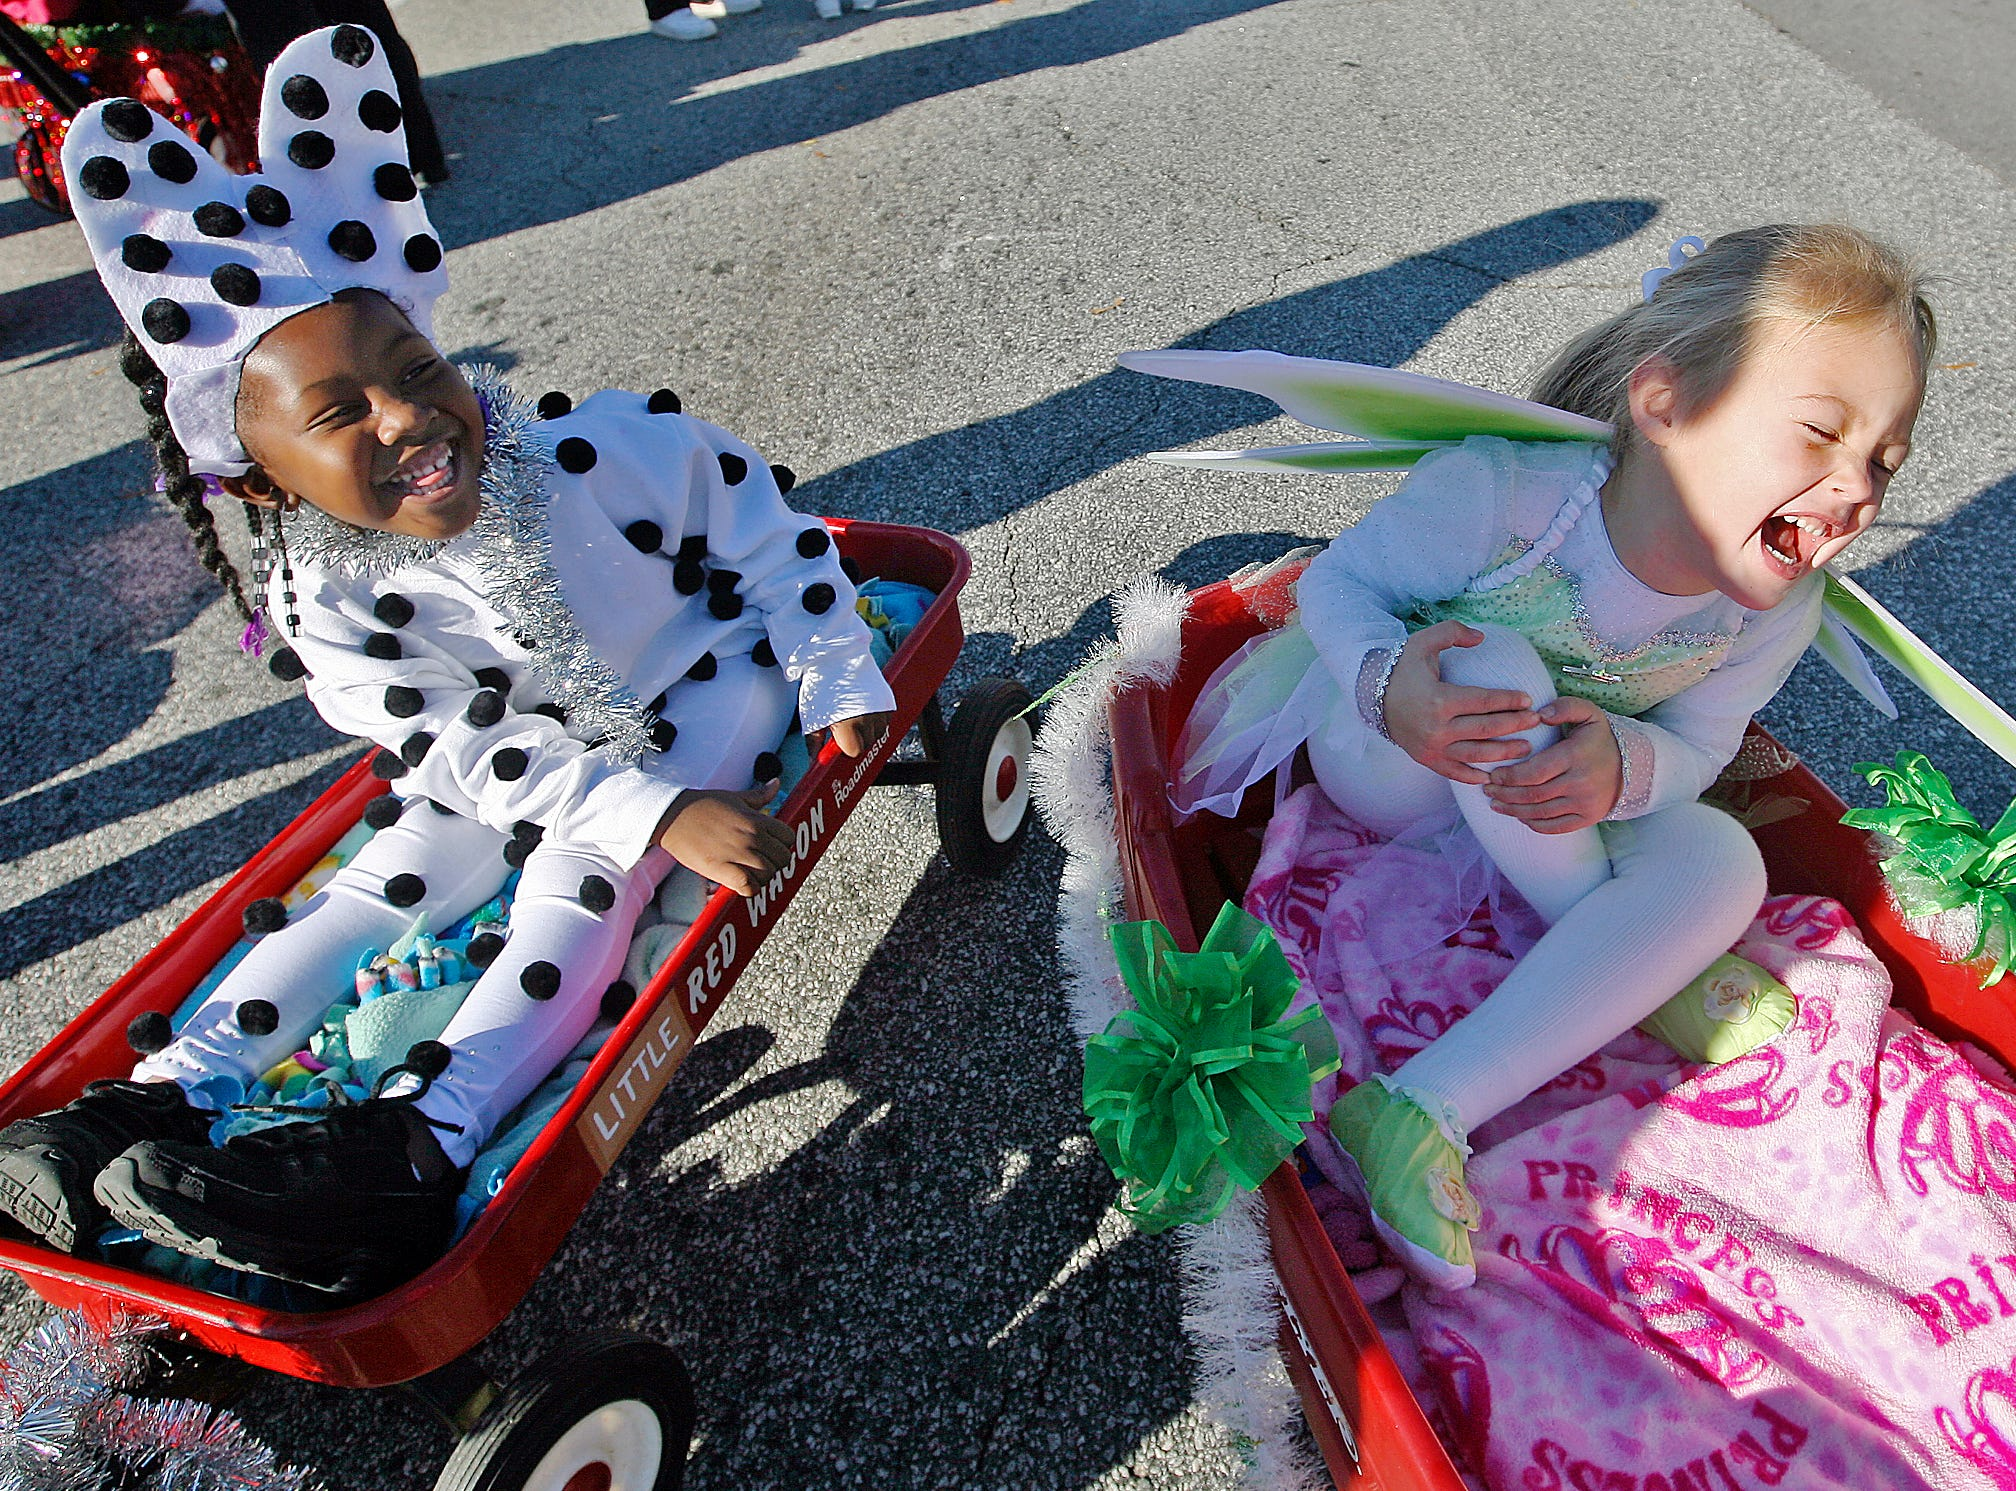 Makaila Lomax and Annsley Lowery laugh together before taking part in the Anderson Christmas Parade in 2002. The girls were part of a group of dancers from Steppin' Out Dance Studio, all of whom were dressed as Disney characters.